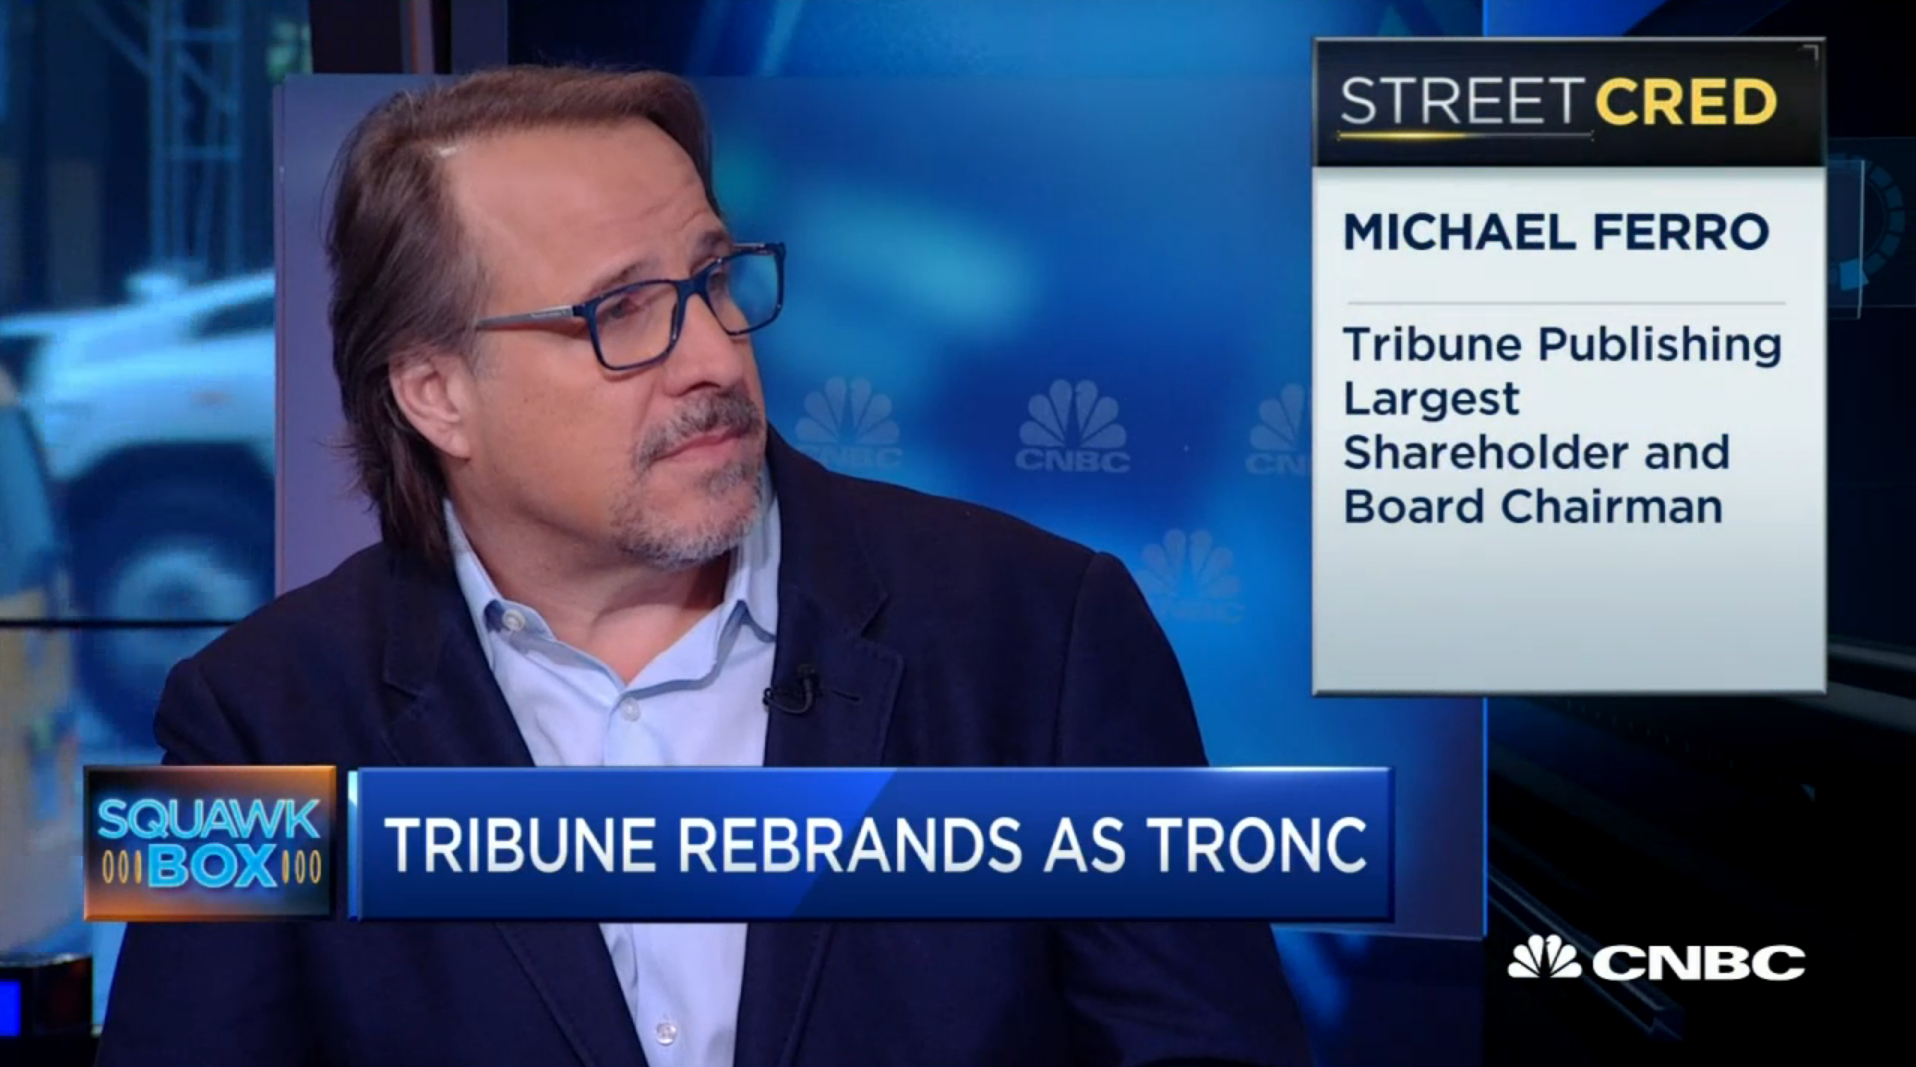 Michael Ferro on CNBC